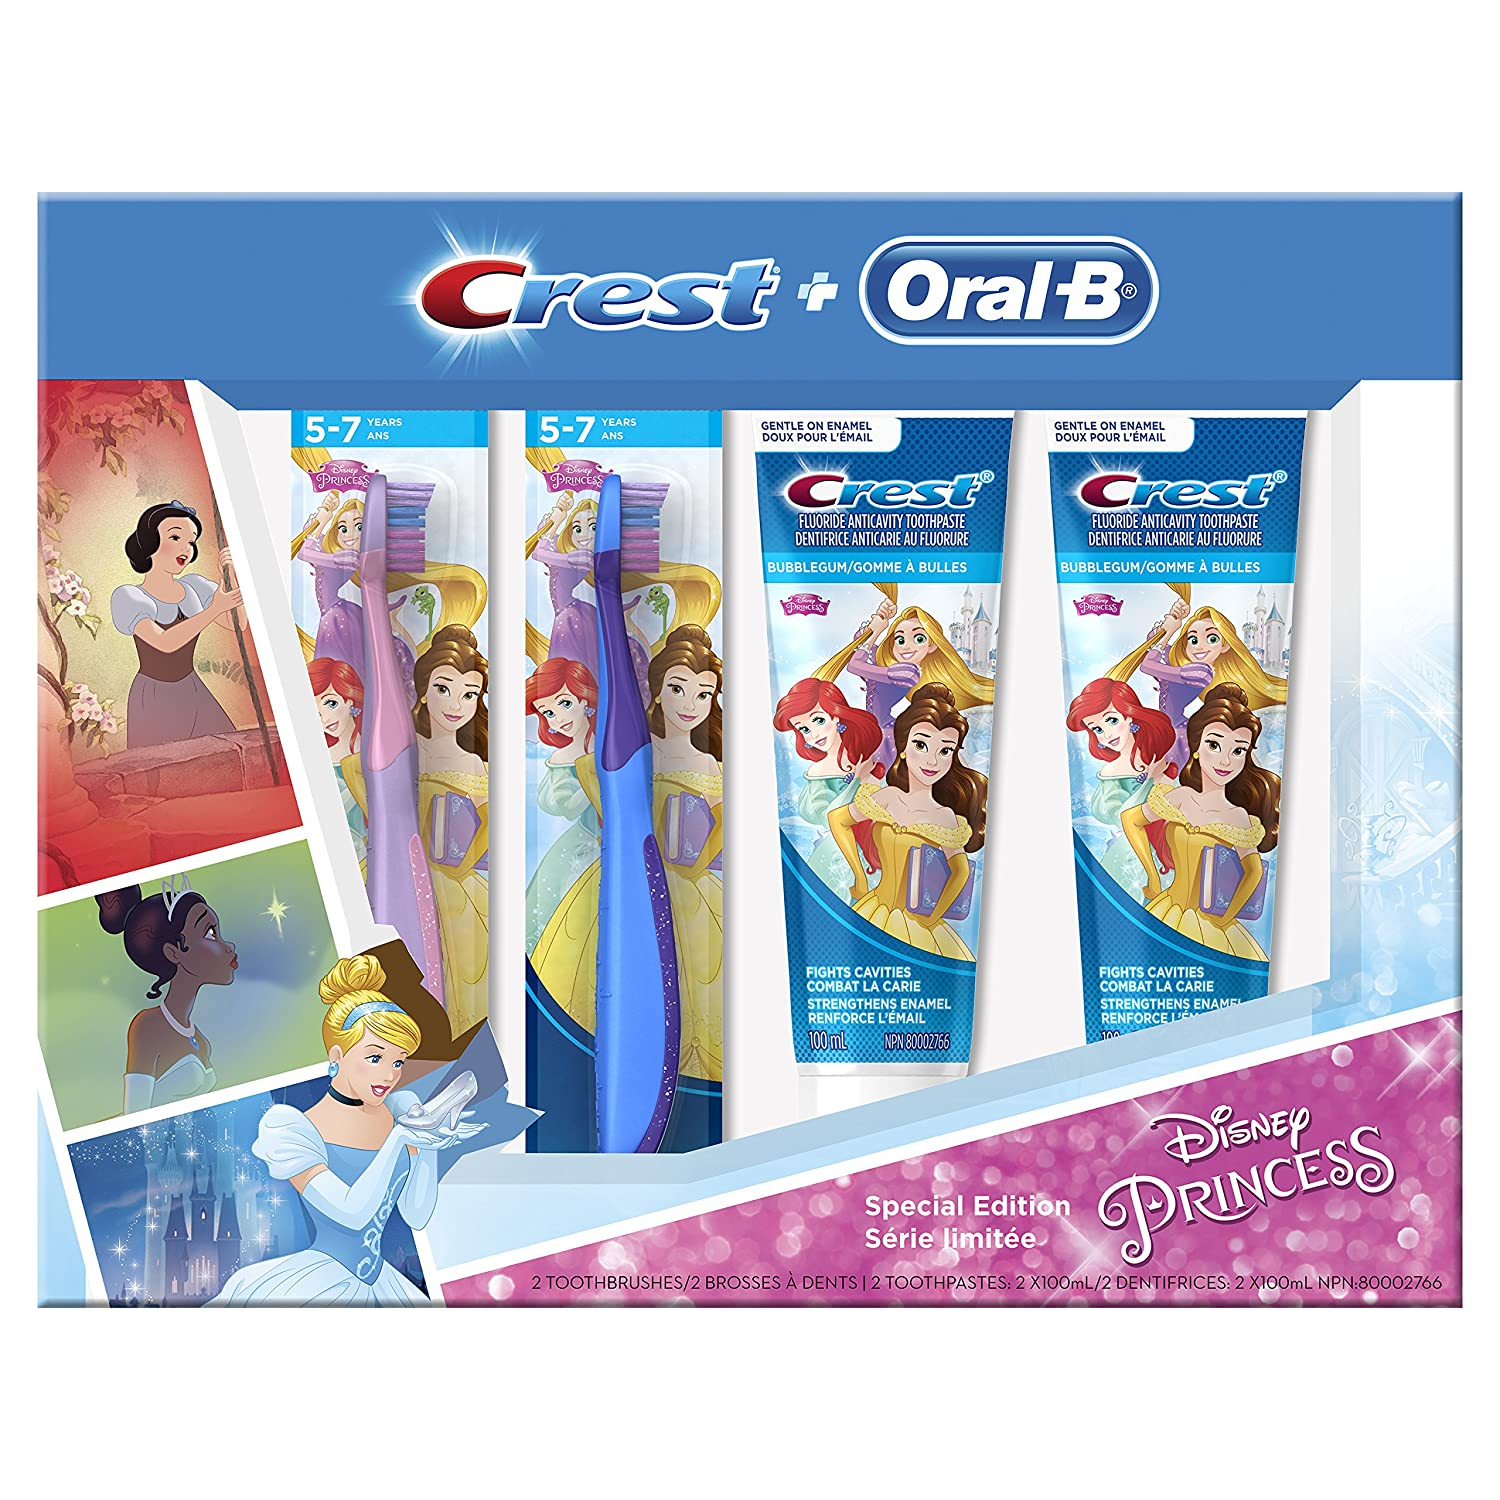 $5 Crest Oral-B & Kids Special Pack Featuring Disneys Princess Characters